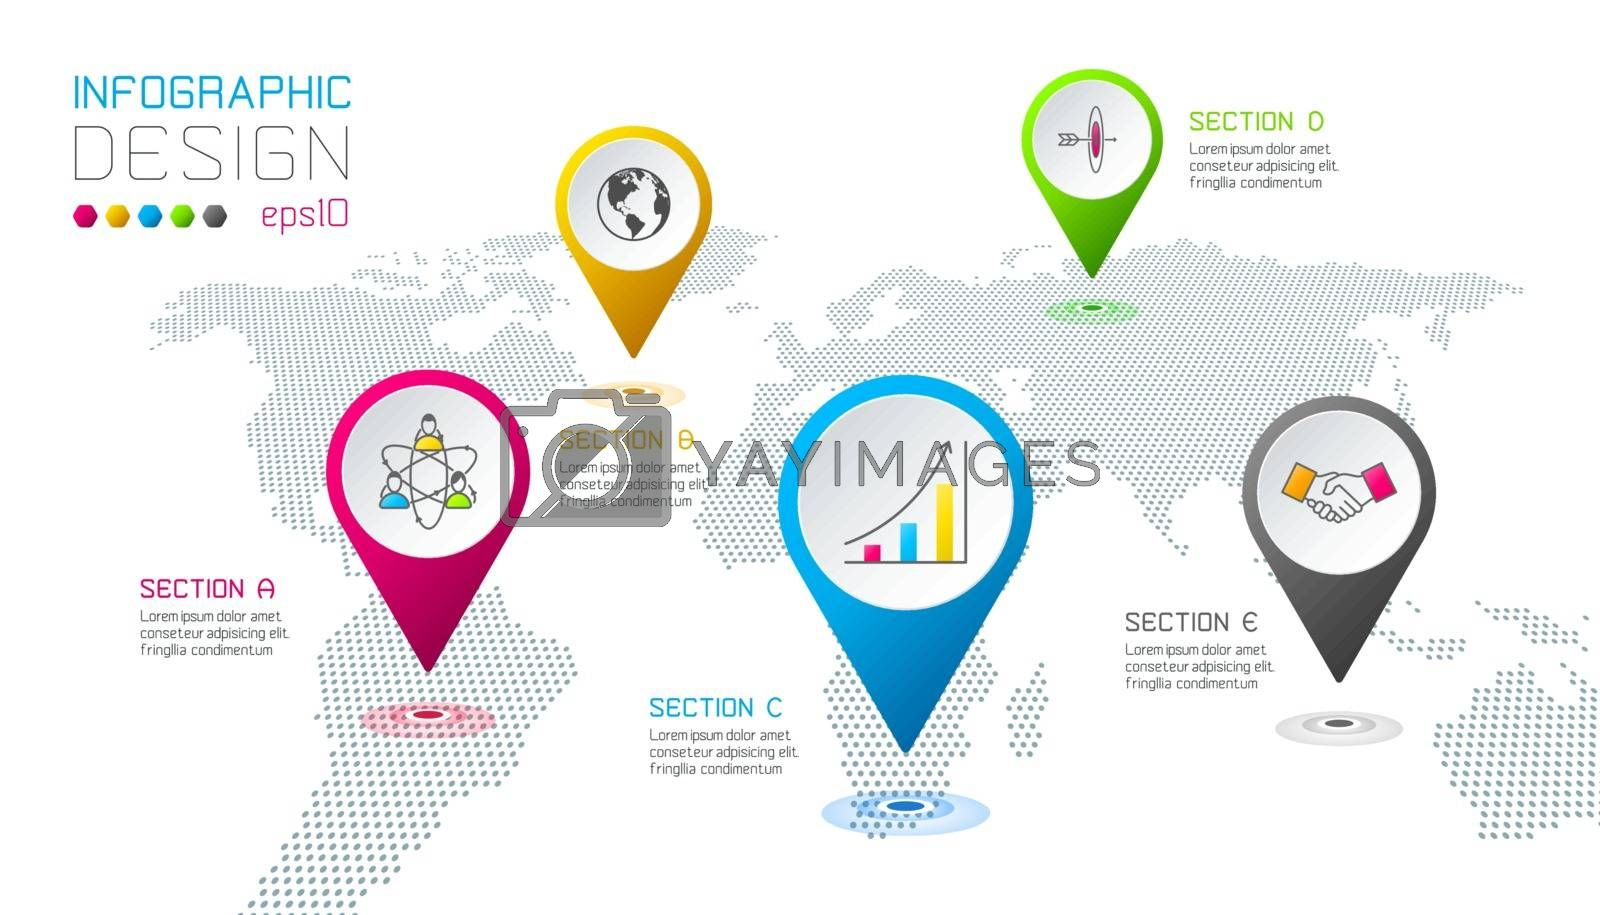 Business pointing labels shape infographic around the world map.